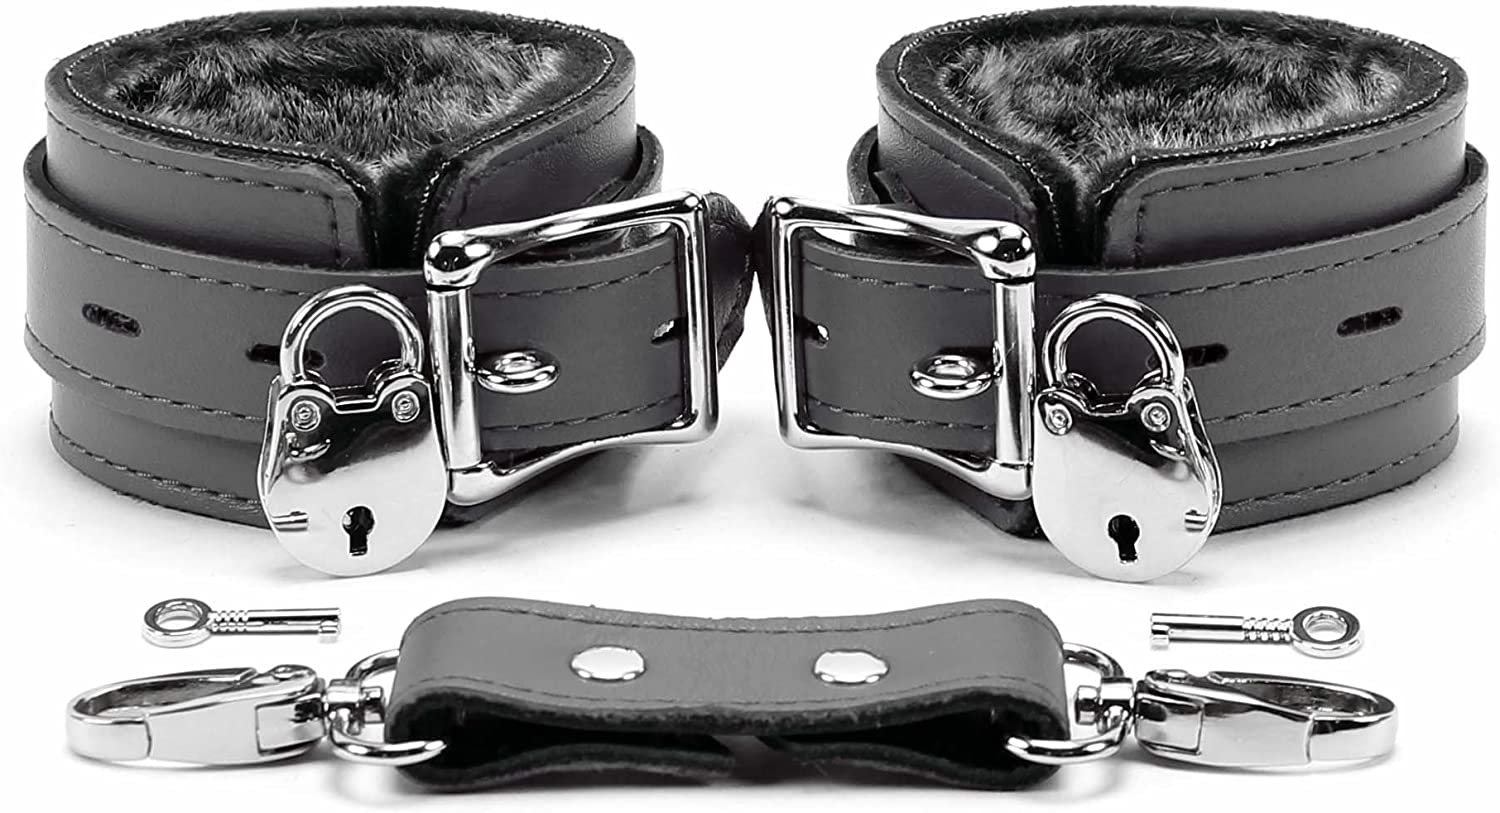 Maydelle Handcuffs Leg Cuffs Handcrafted Ultra-Soft Lambskin Leather Innovative Design Grey, Wrist